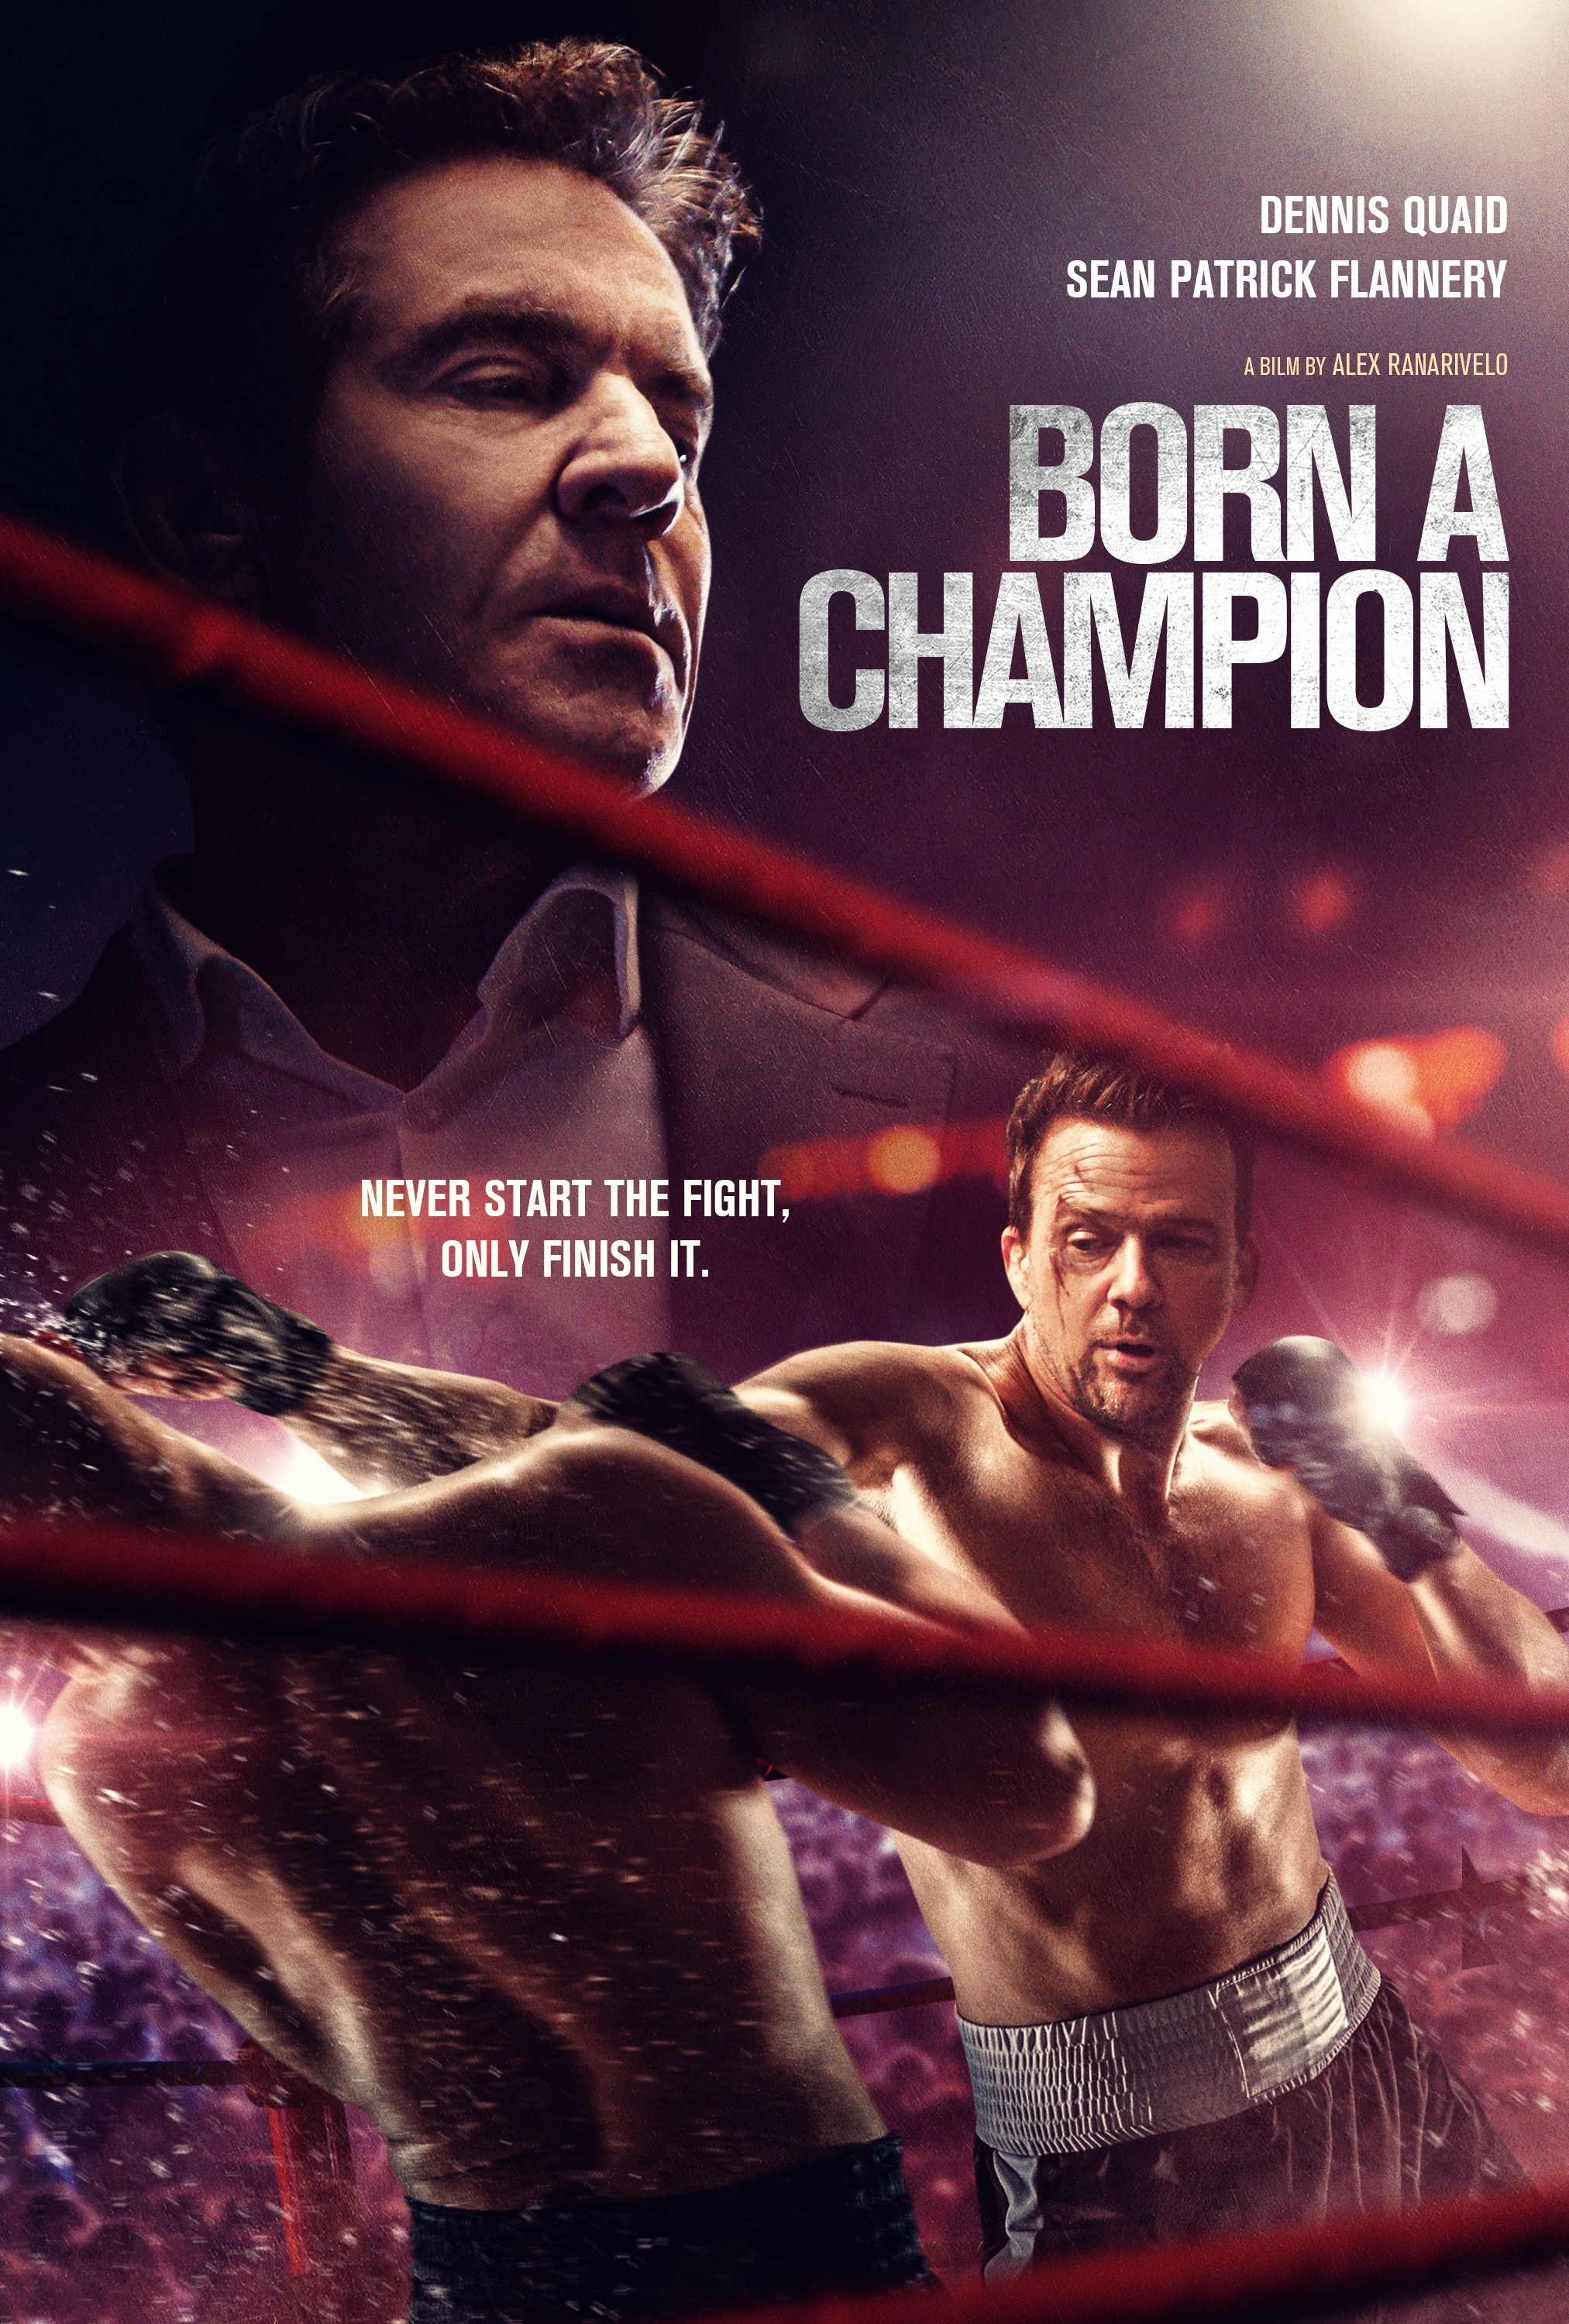 BORN_A_CHAMPION__VOD_KEY_ART.jpg